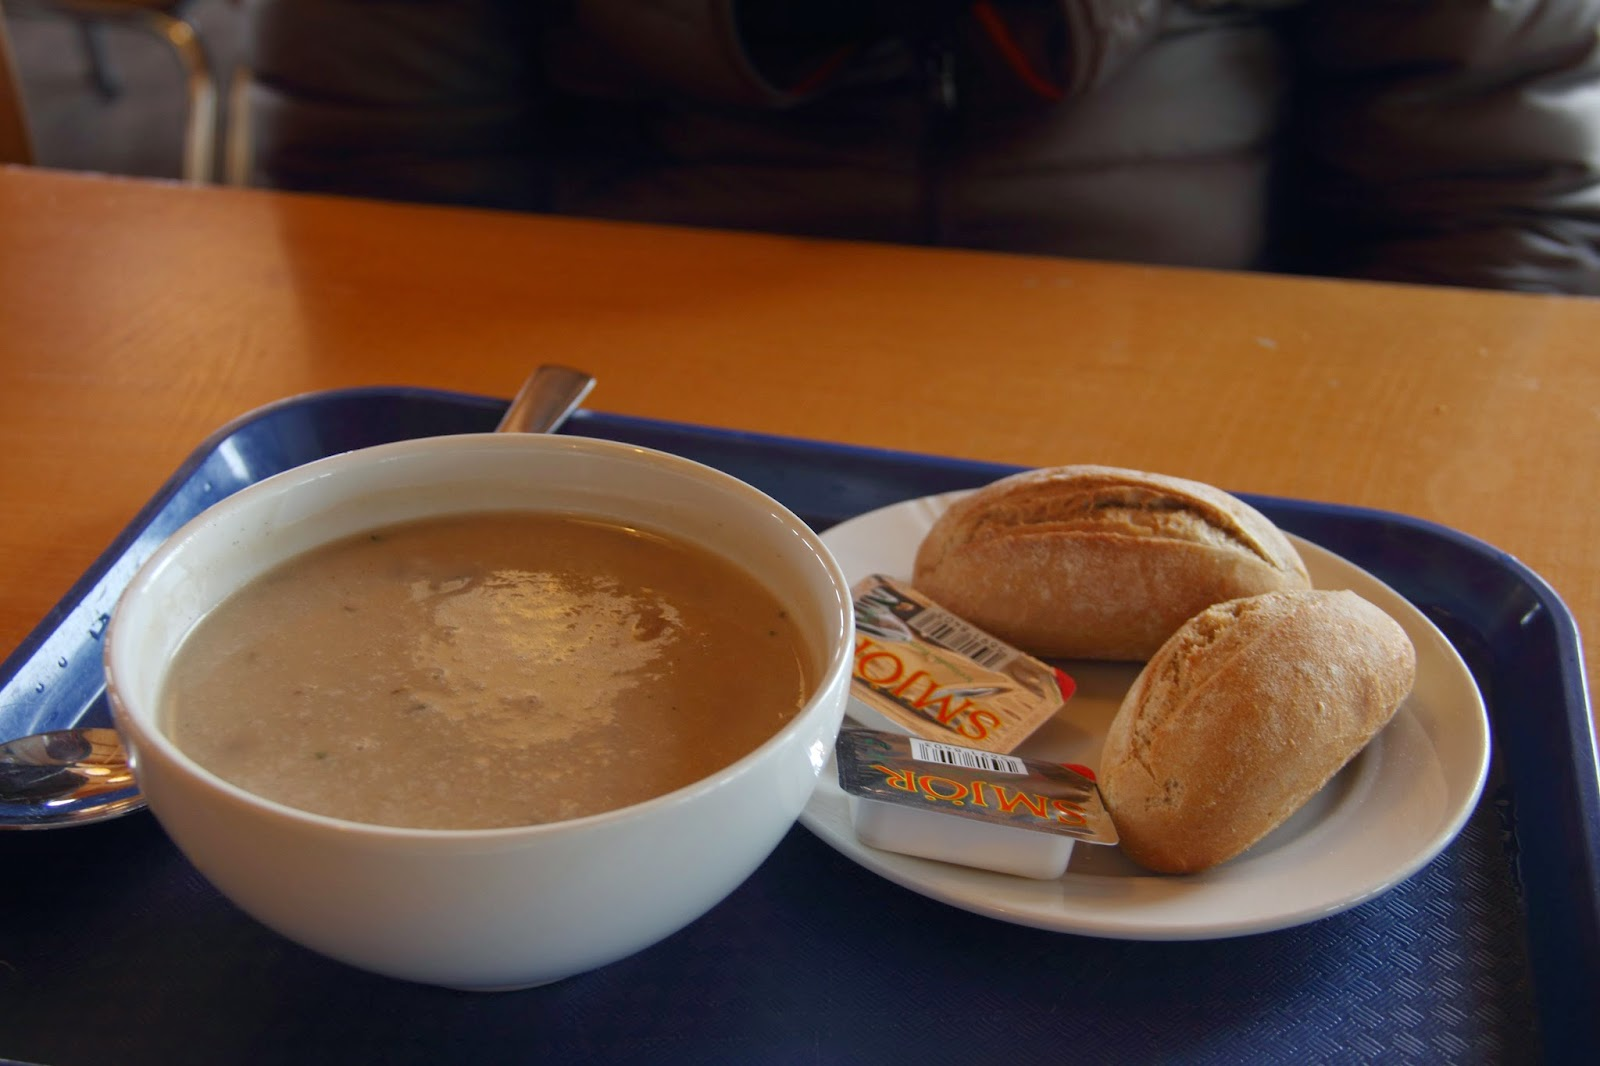 Mushroom soup at the Gulfoss cafe